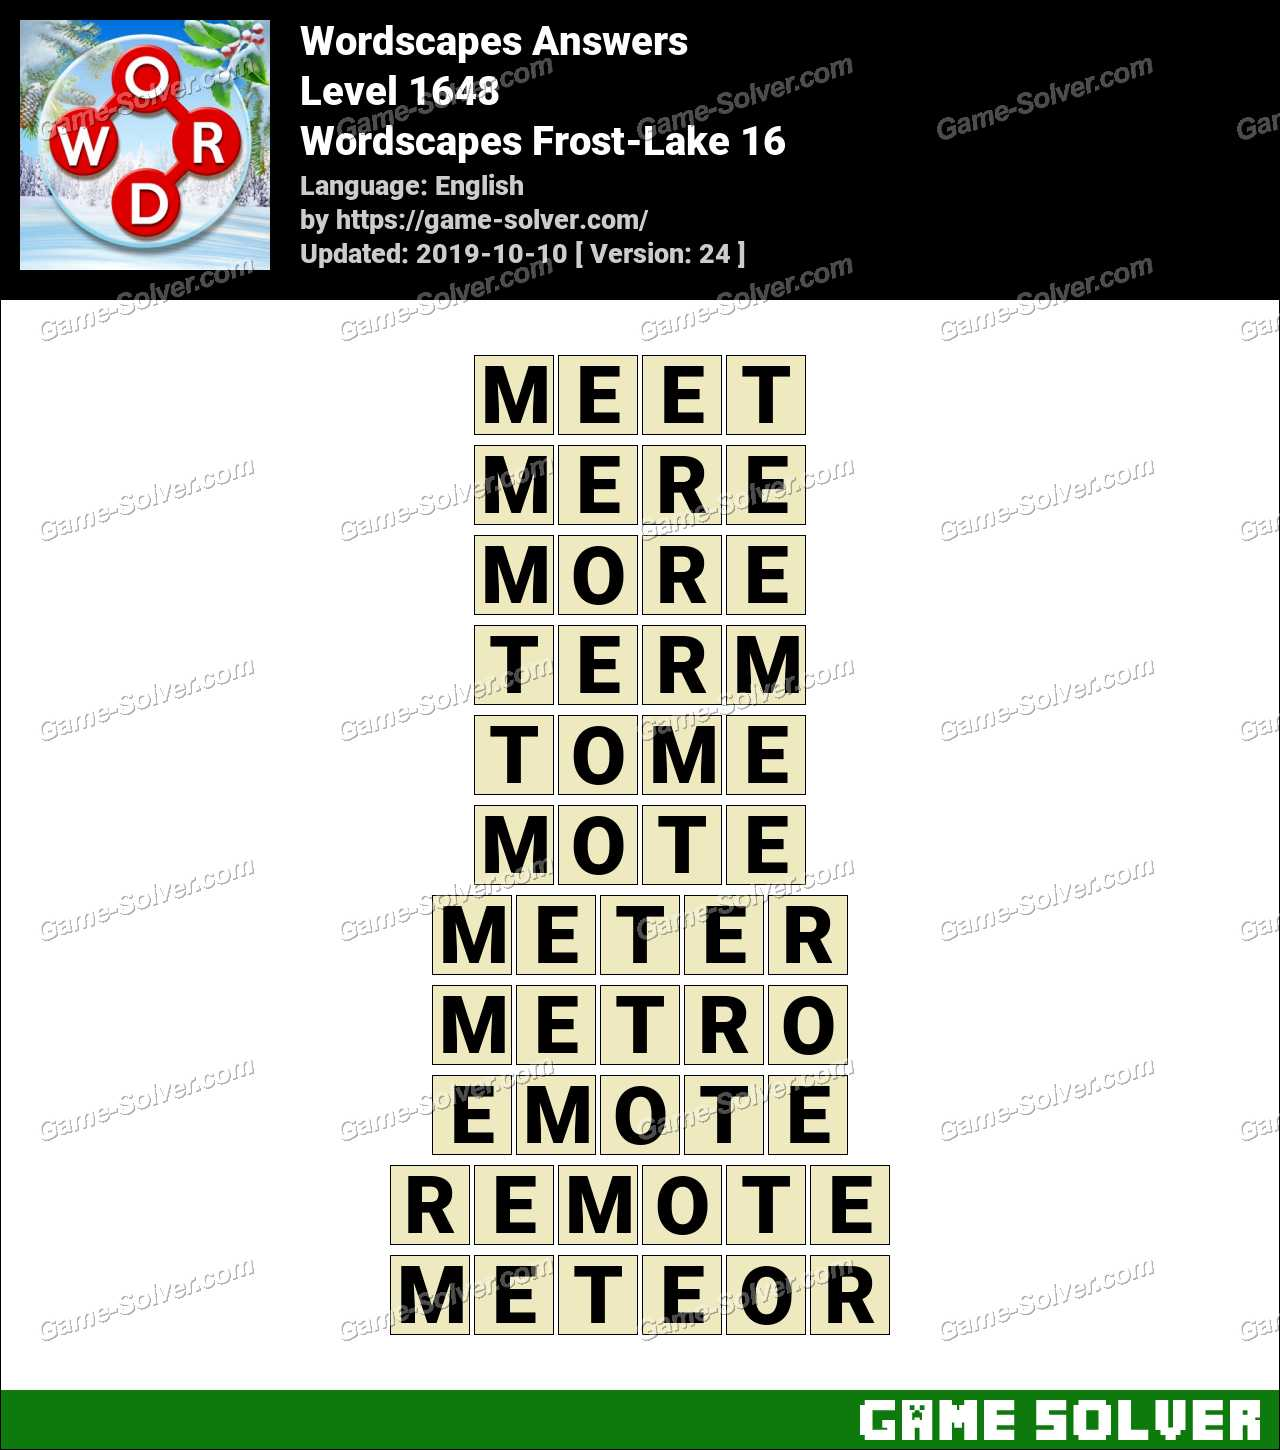 Wordscapes Frost-Lake 16 Answers